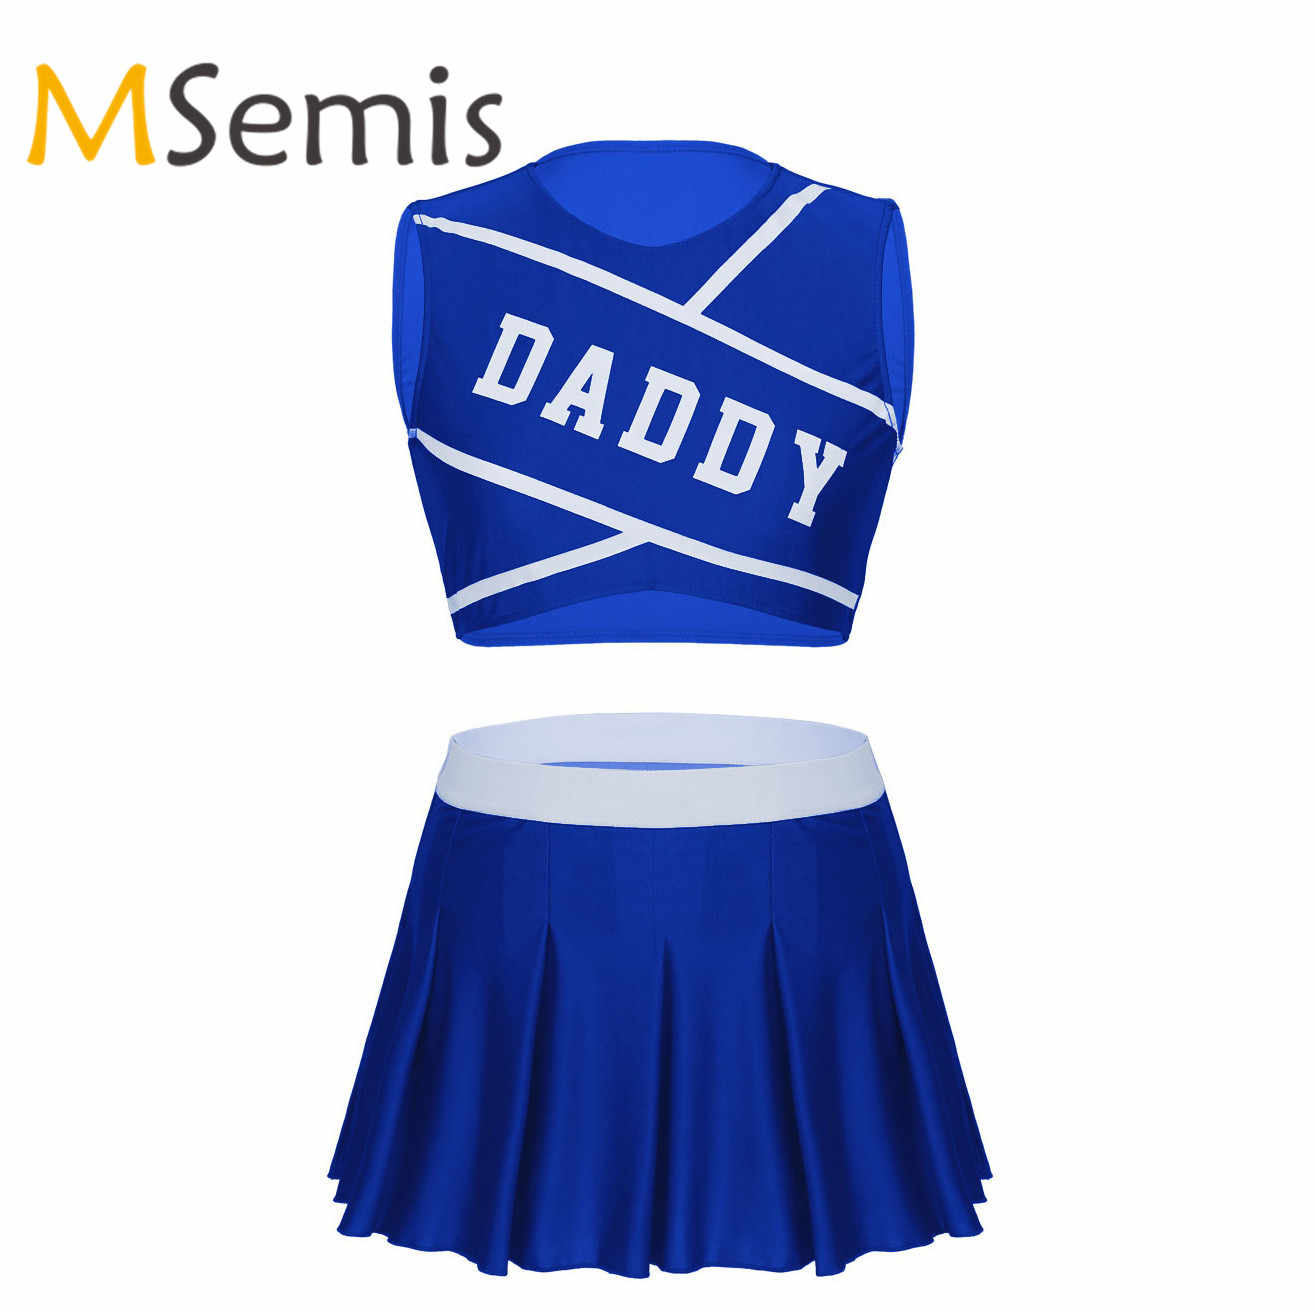 Frauen Cheerleader Uniform Schülerin Karneval Dancewear Crop Top mit Mini Plissee Rock Rolle Spielen Cheerleading Kostüm